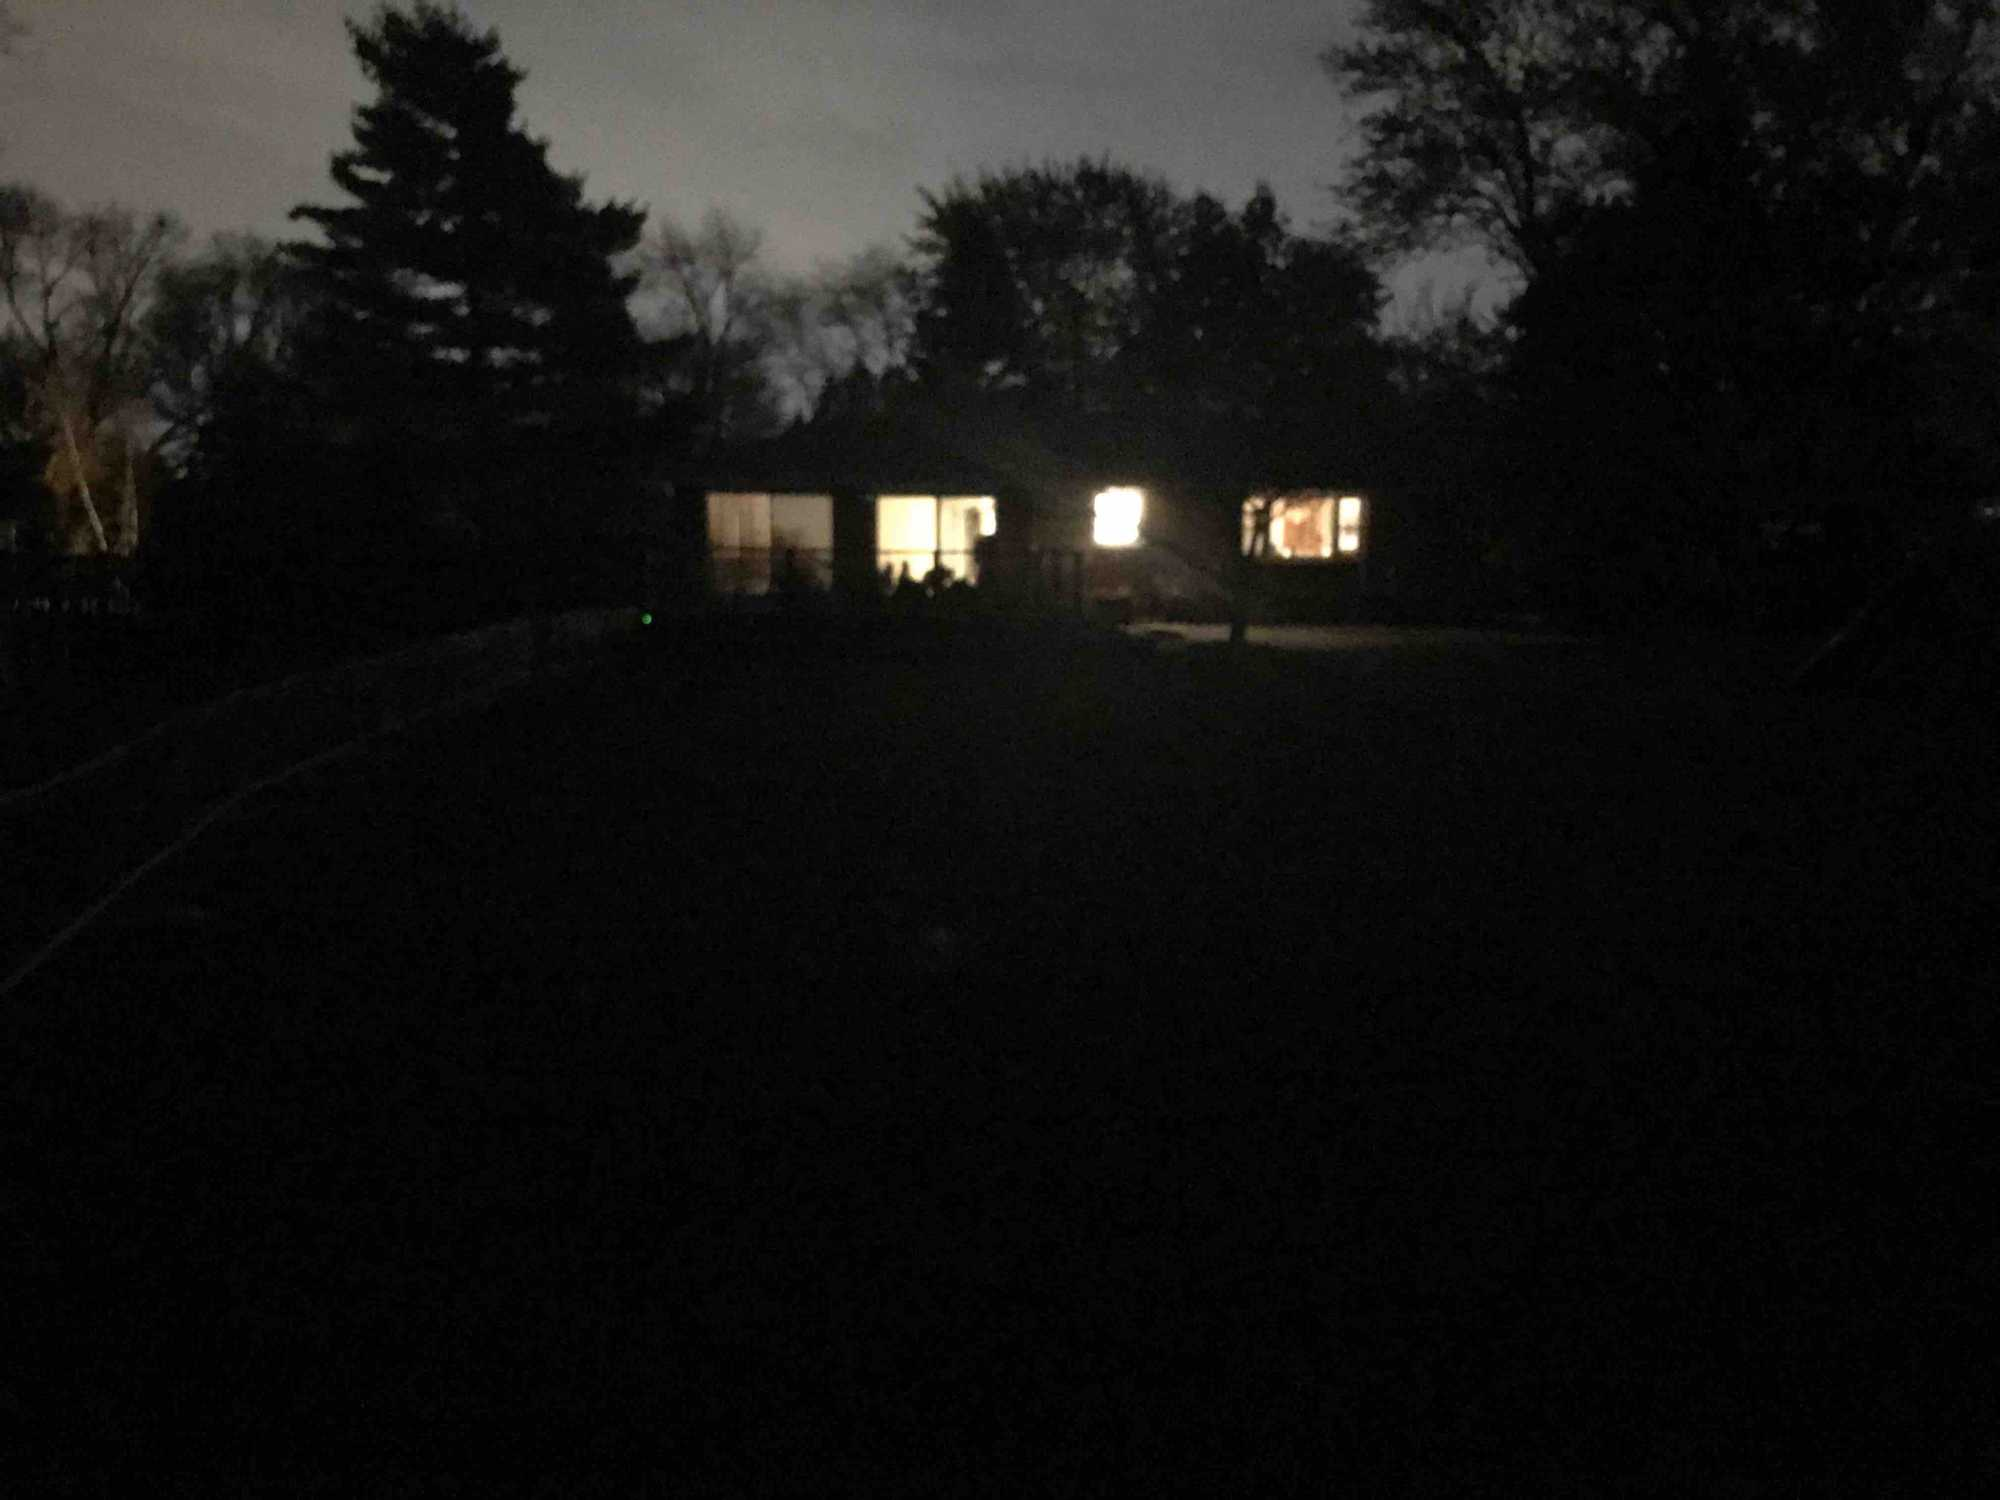 Dark yard with the house about 100ft away